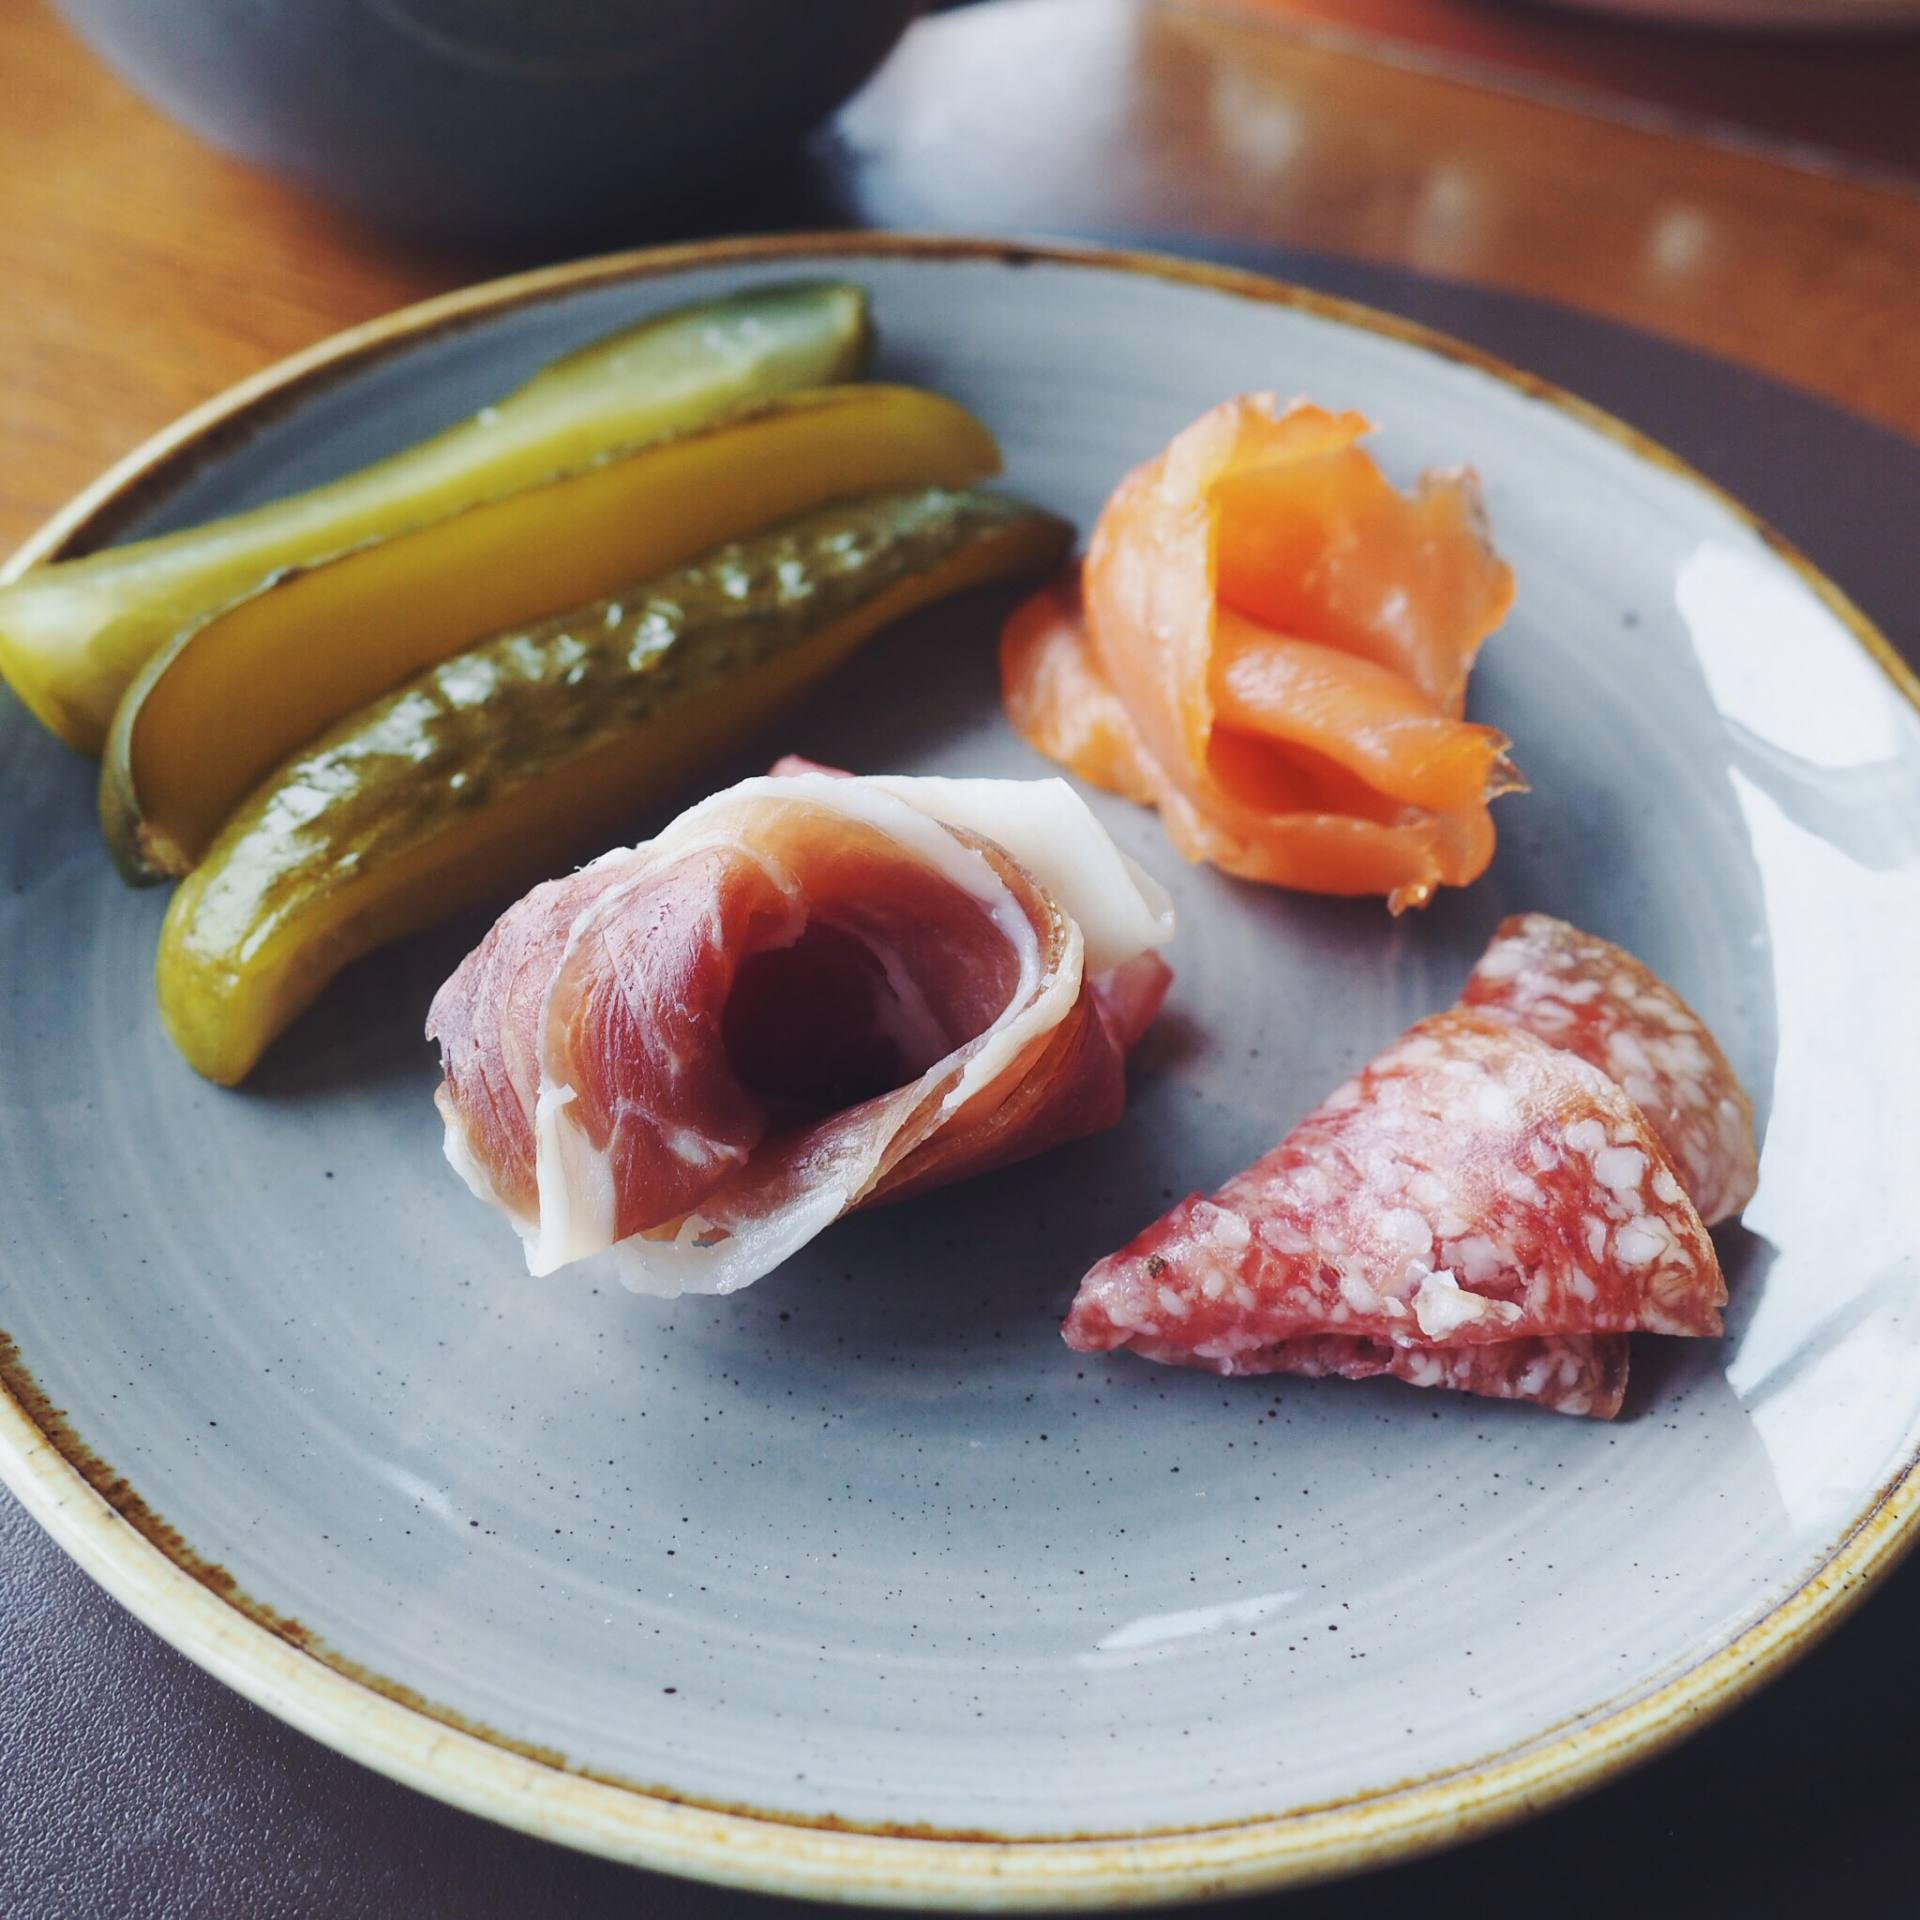 Cold meats and pickles for breakfast